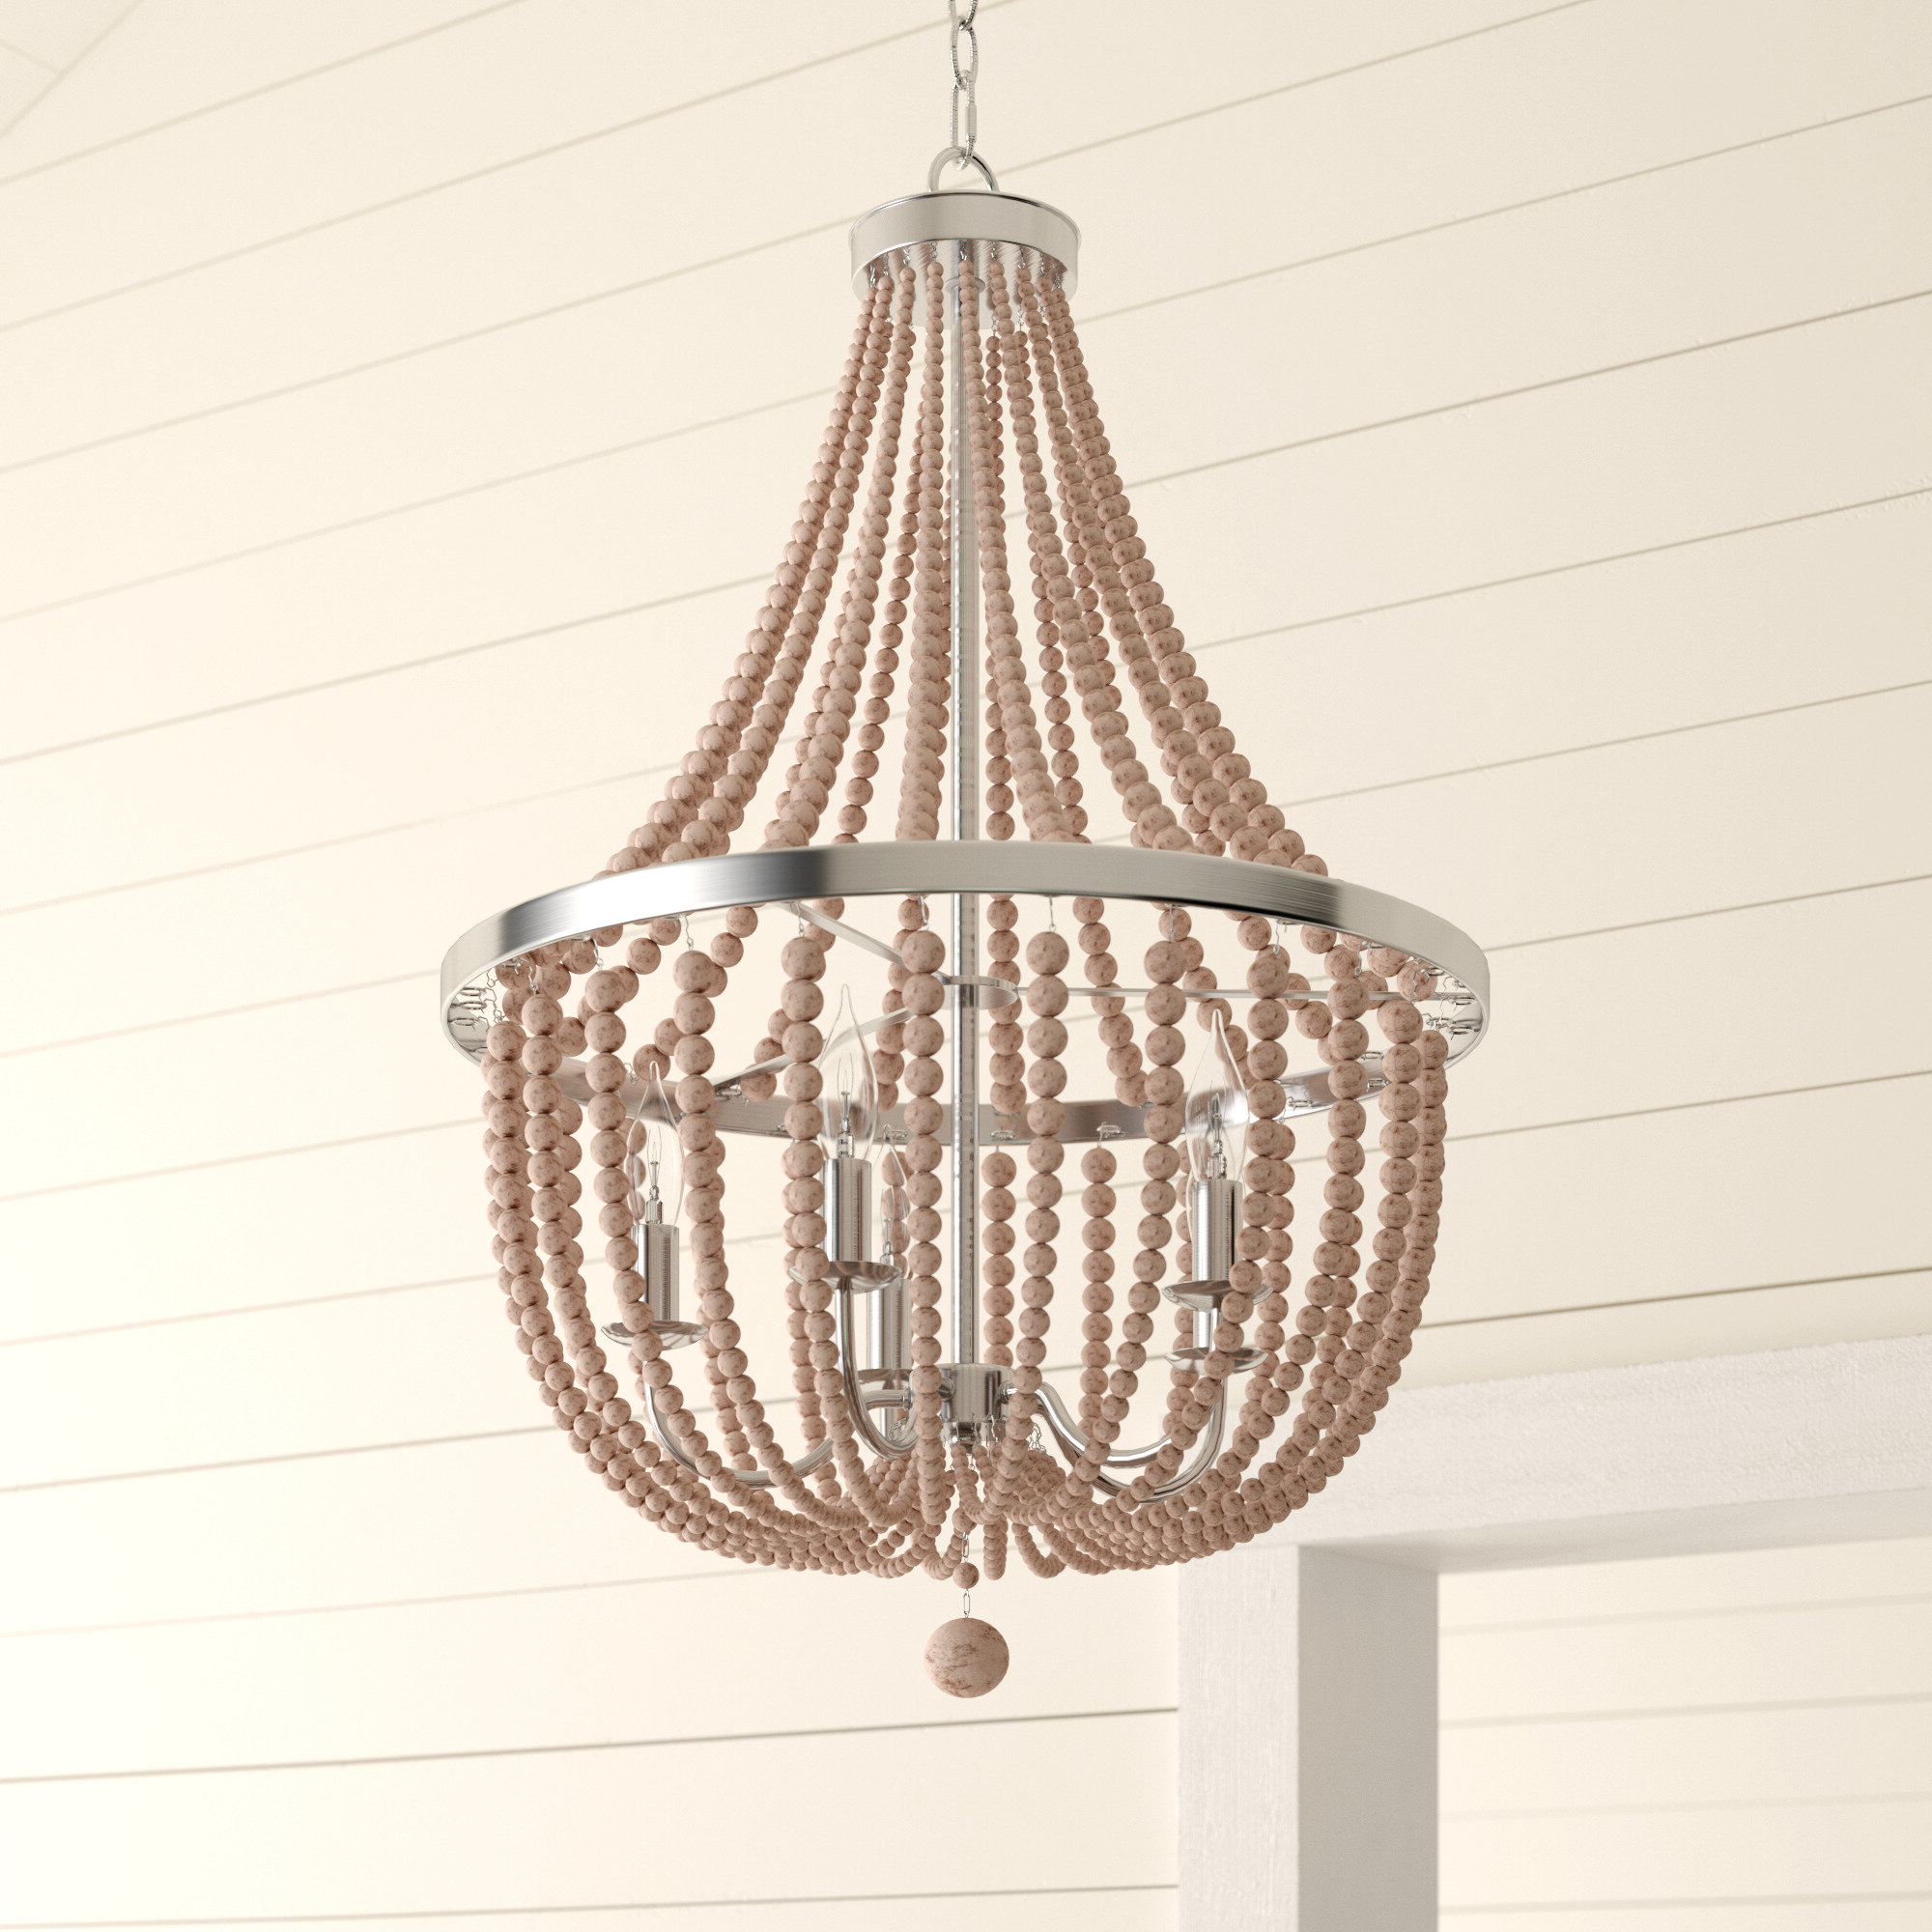 Trendy Duron 5 Light Empire Chandeliers For Bay Isle Home Tilden Wood Bead 5 Light Empire Chandelier (View 22 of 25)